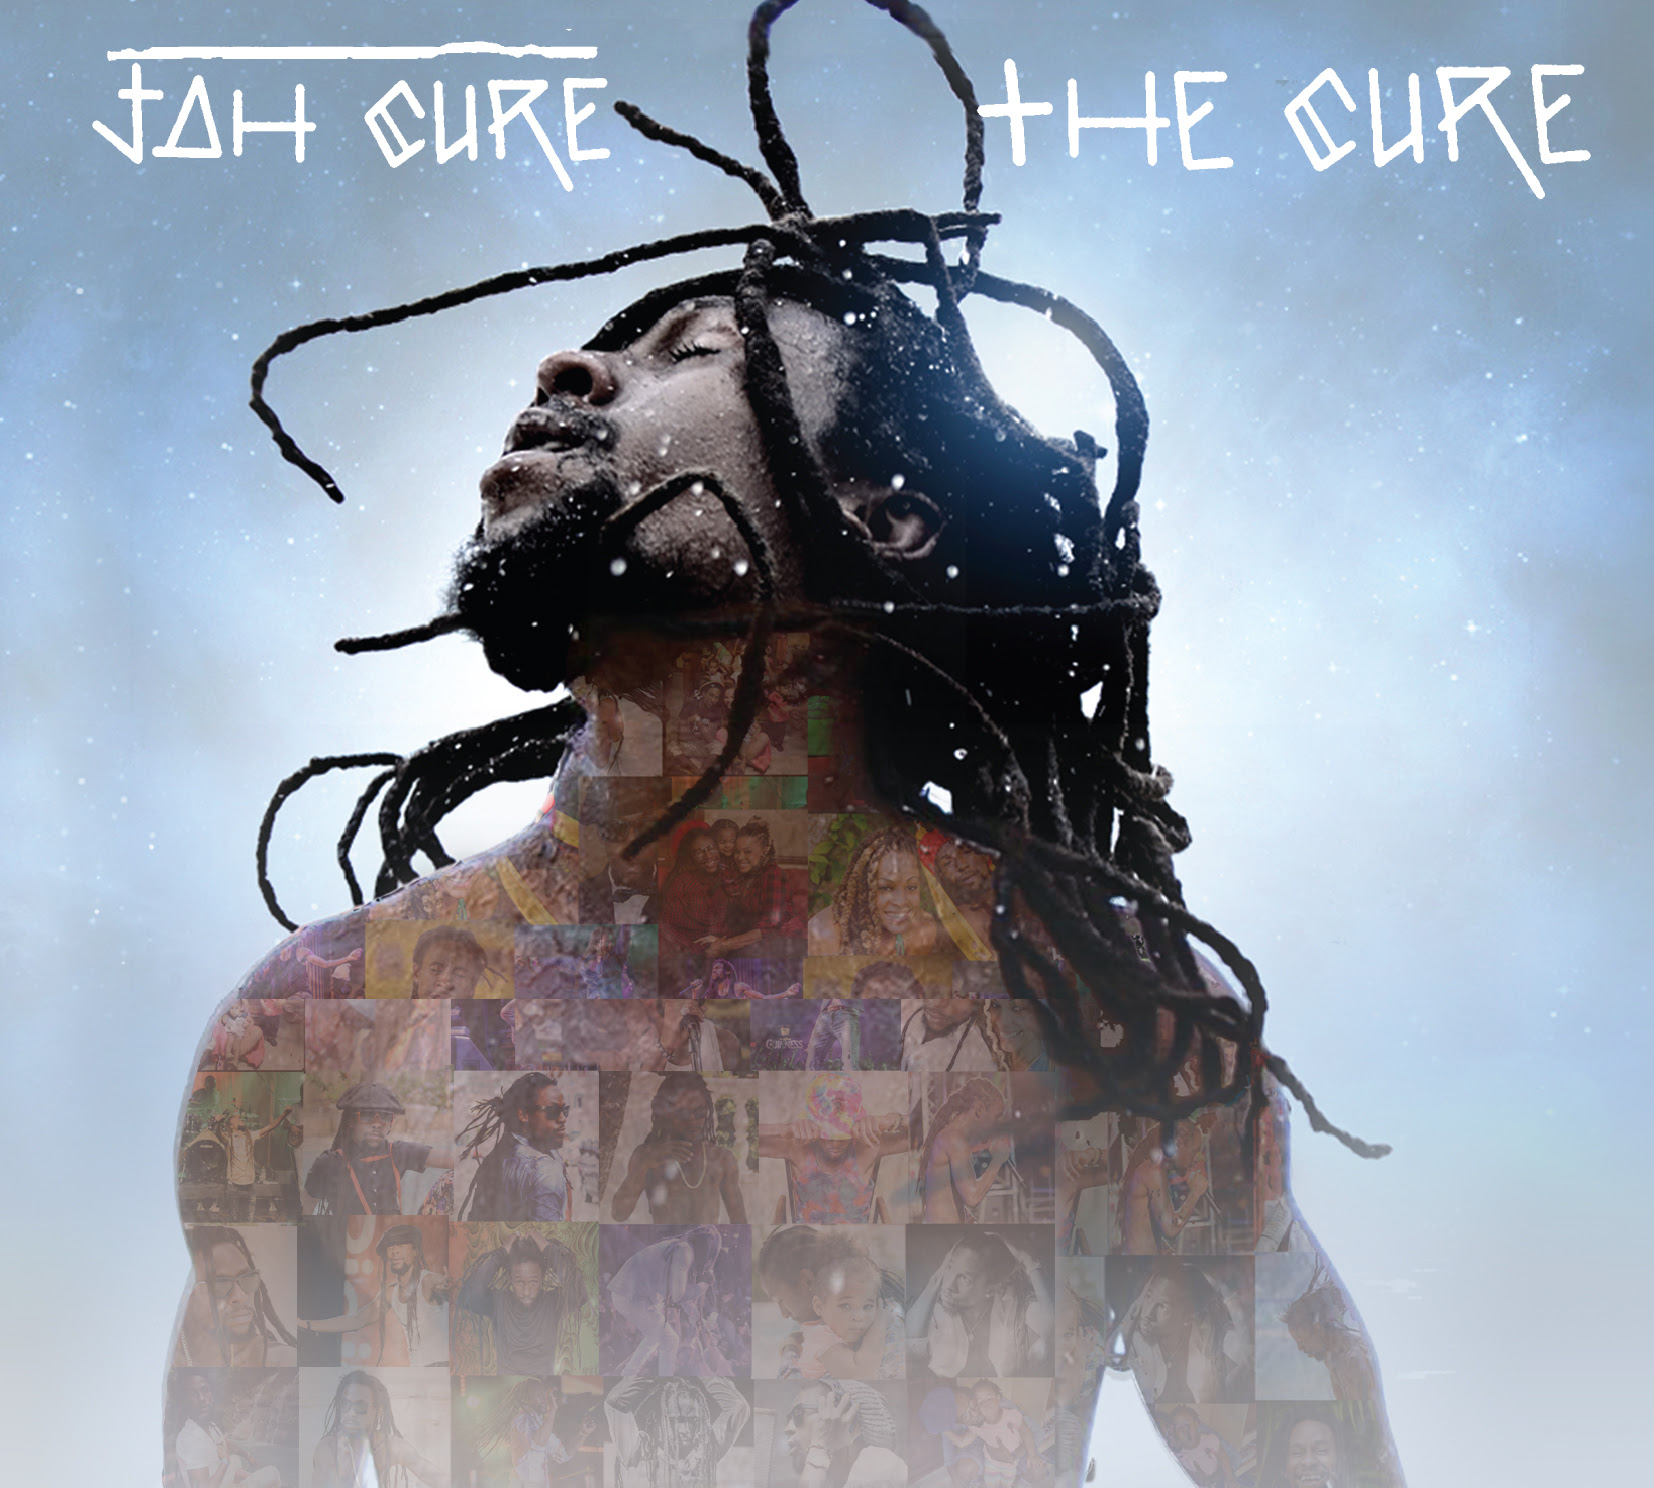 jah cure, the cure, vp records